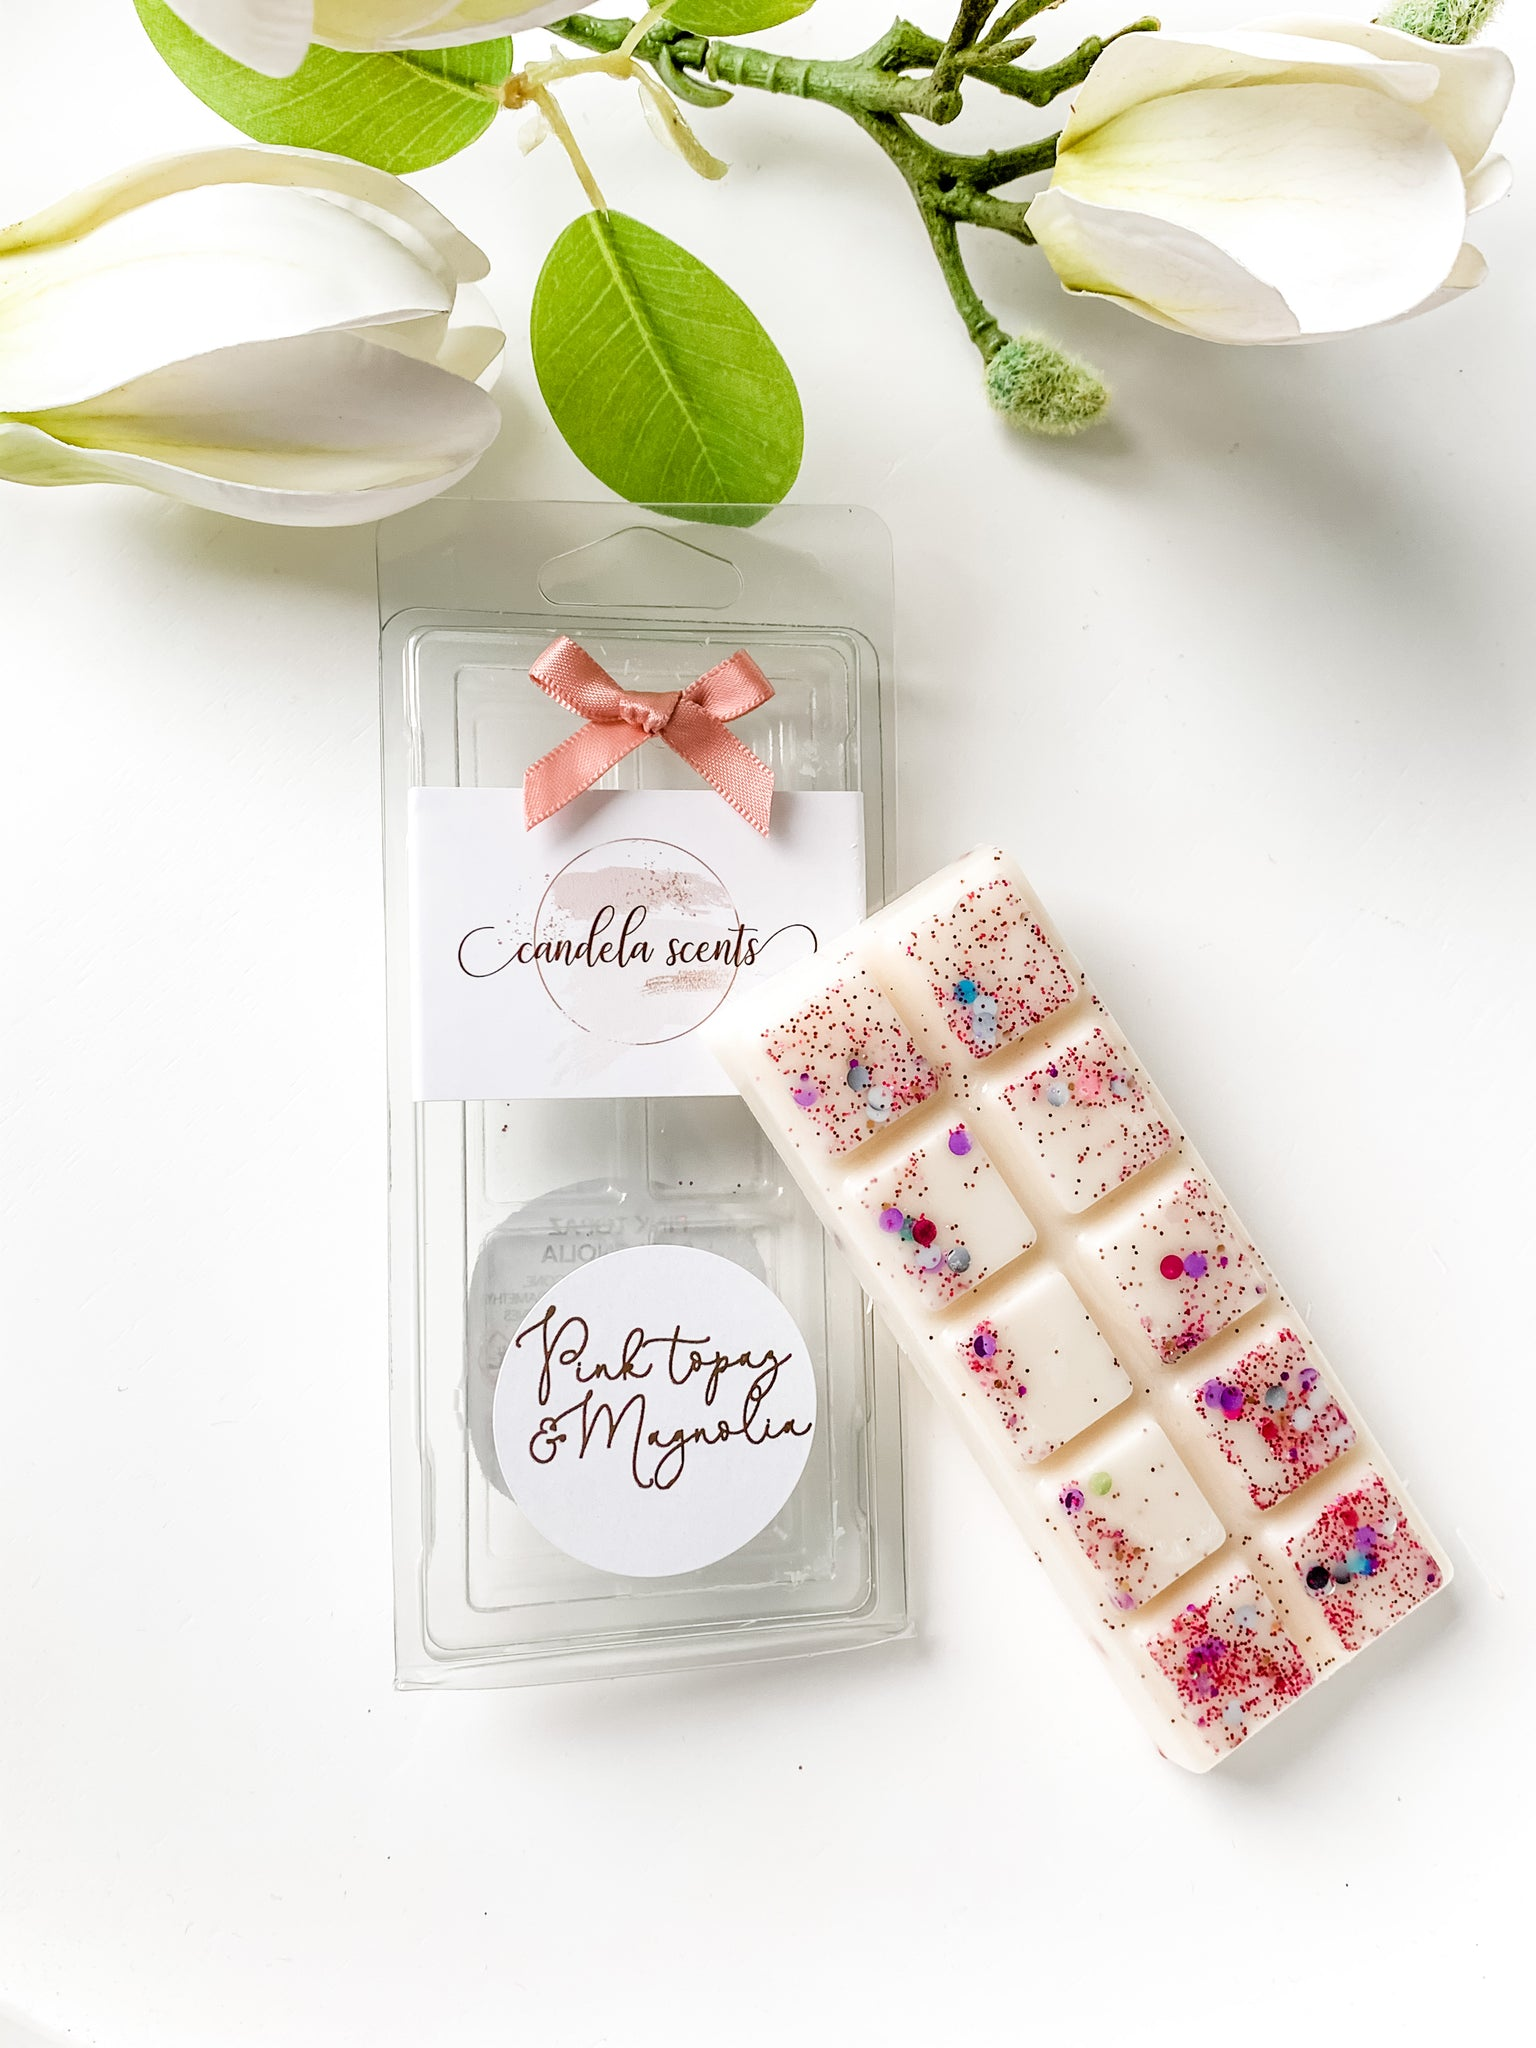 Pink Topaz & Magnolia Scented Wax Snap Bar